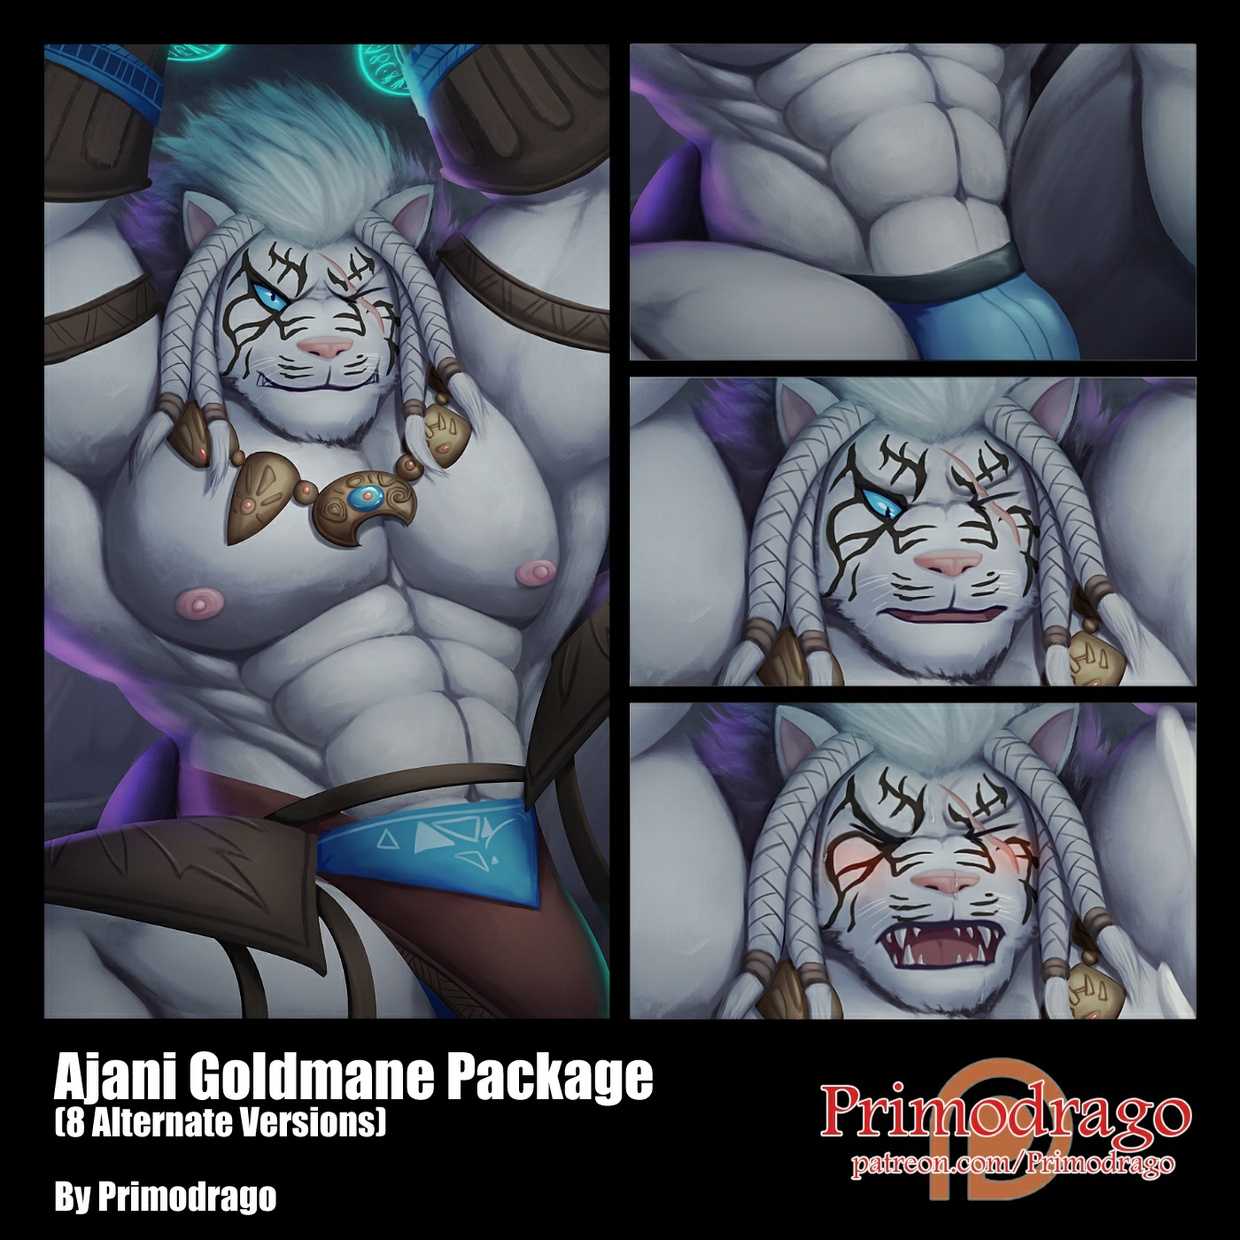 Ajani Goldmane Package